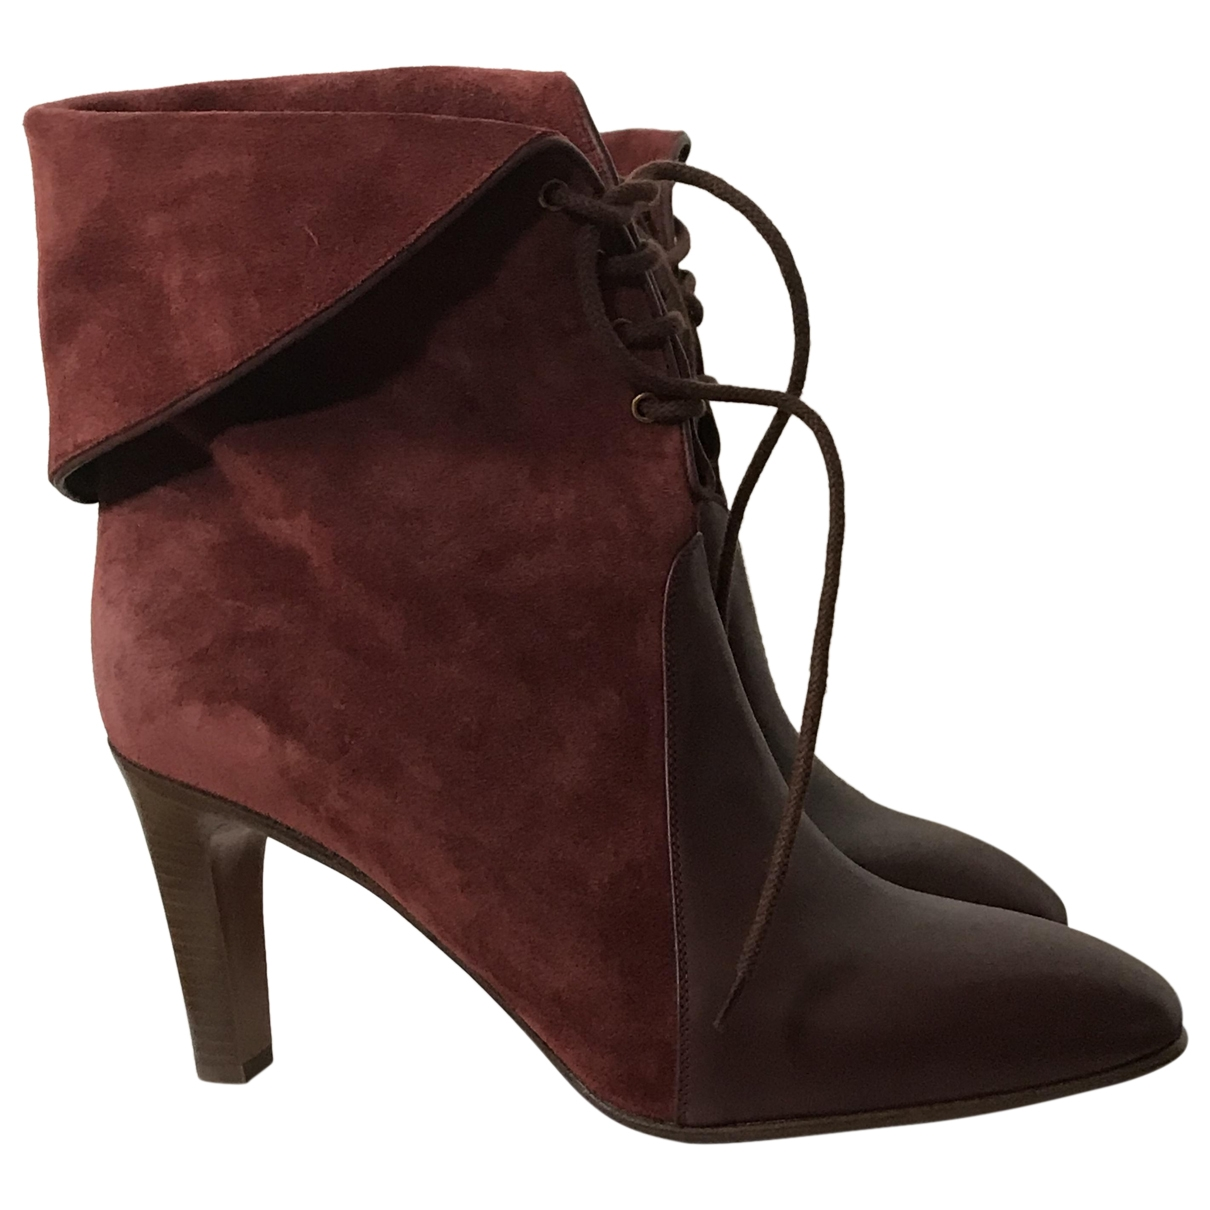 Chloé \N Burgundy Suede Ankle boots for Women 41 EU